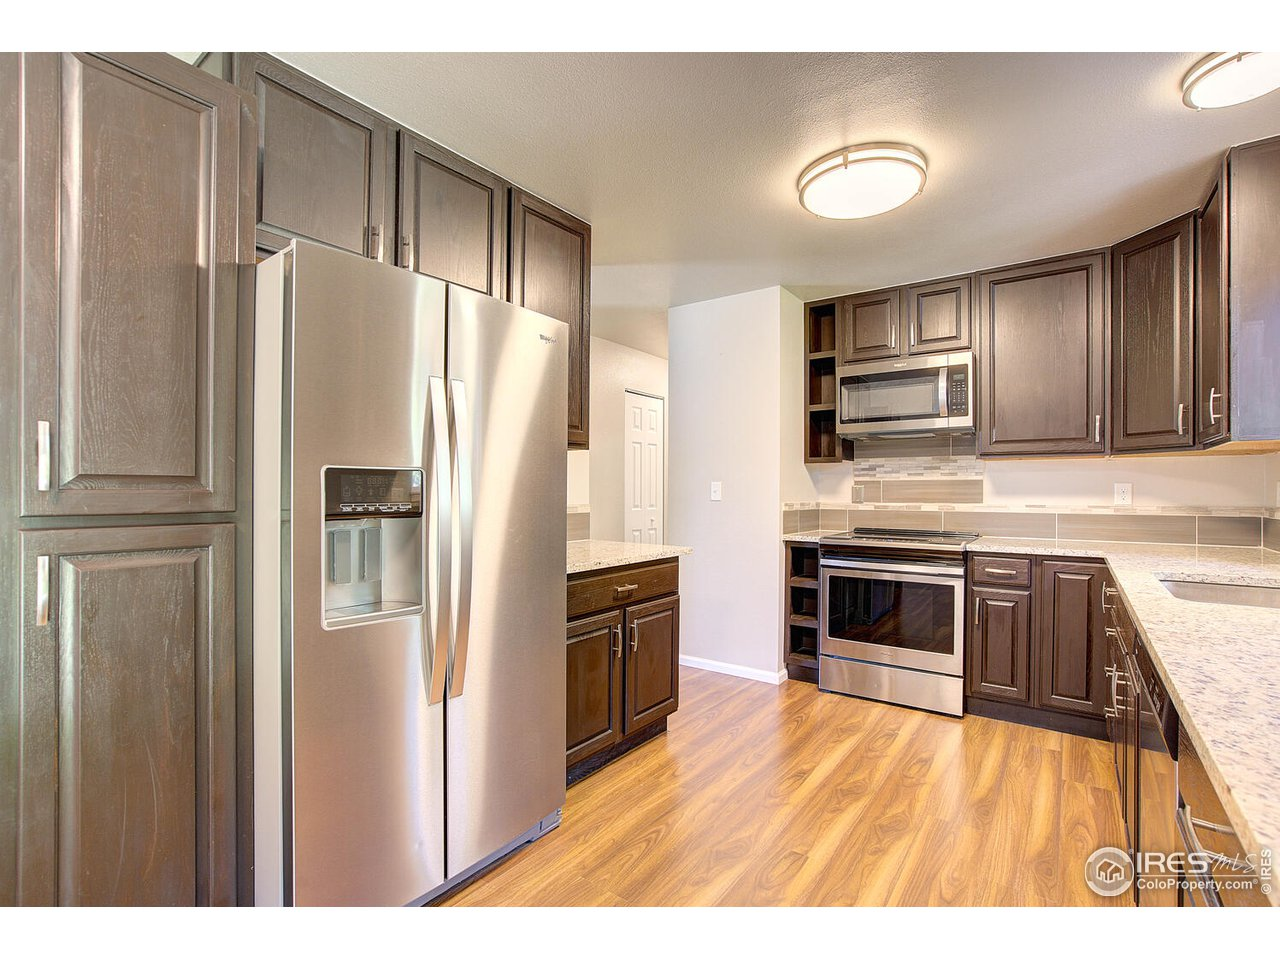 Stainless steel appliances all included